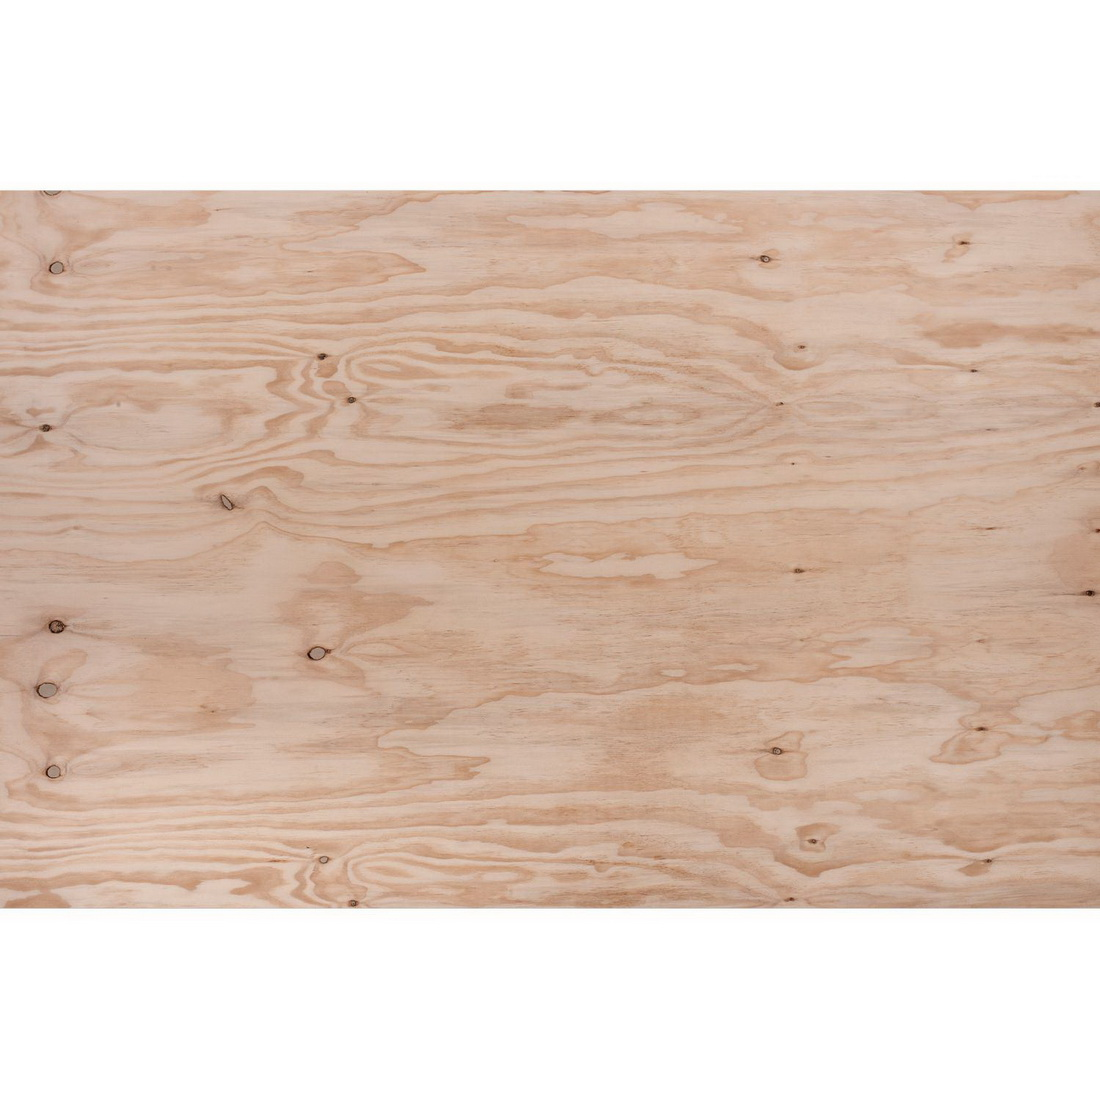 2700x1200x19mm Longspan Structural Plywood Flooring H3.2 Treated